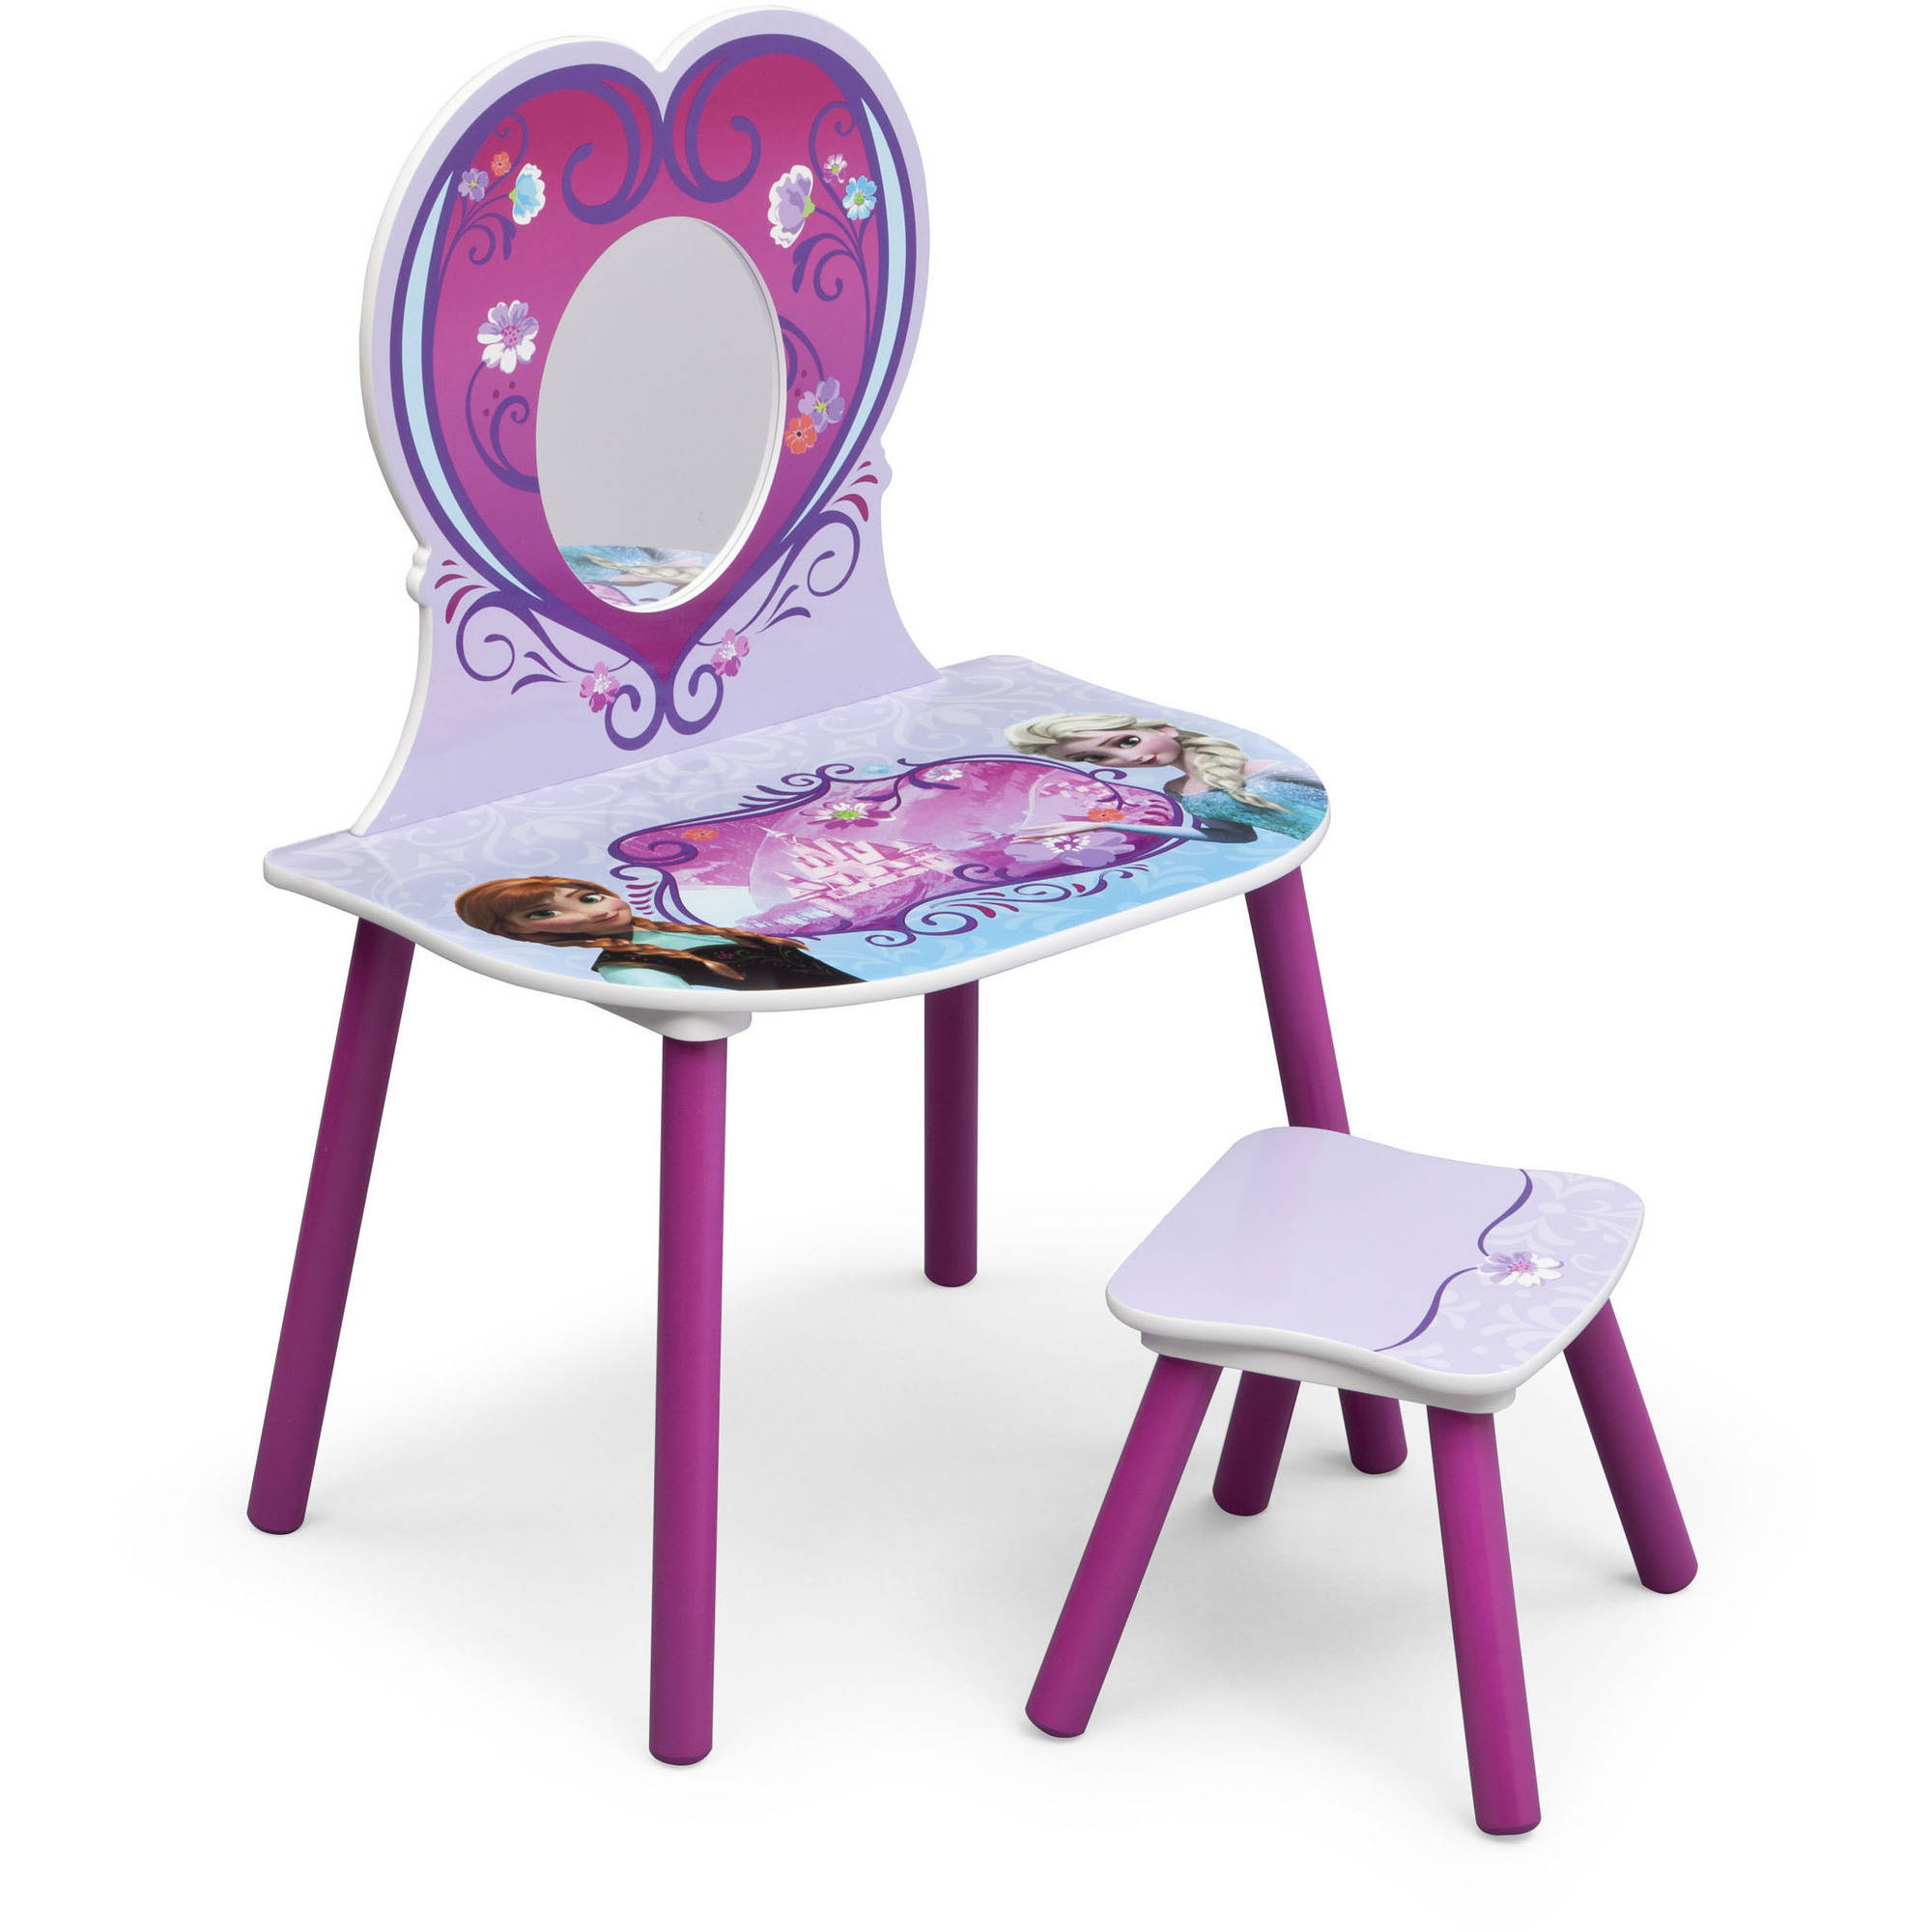 Disney Frozen Vanity with Stool